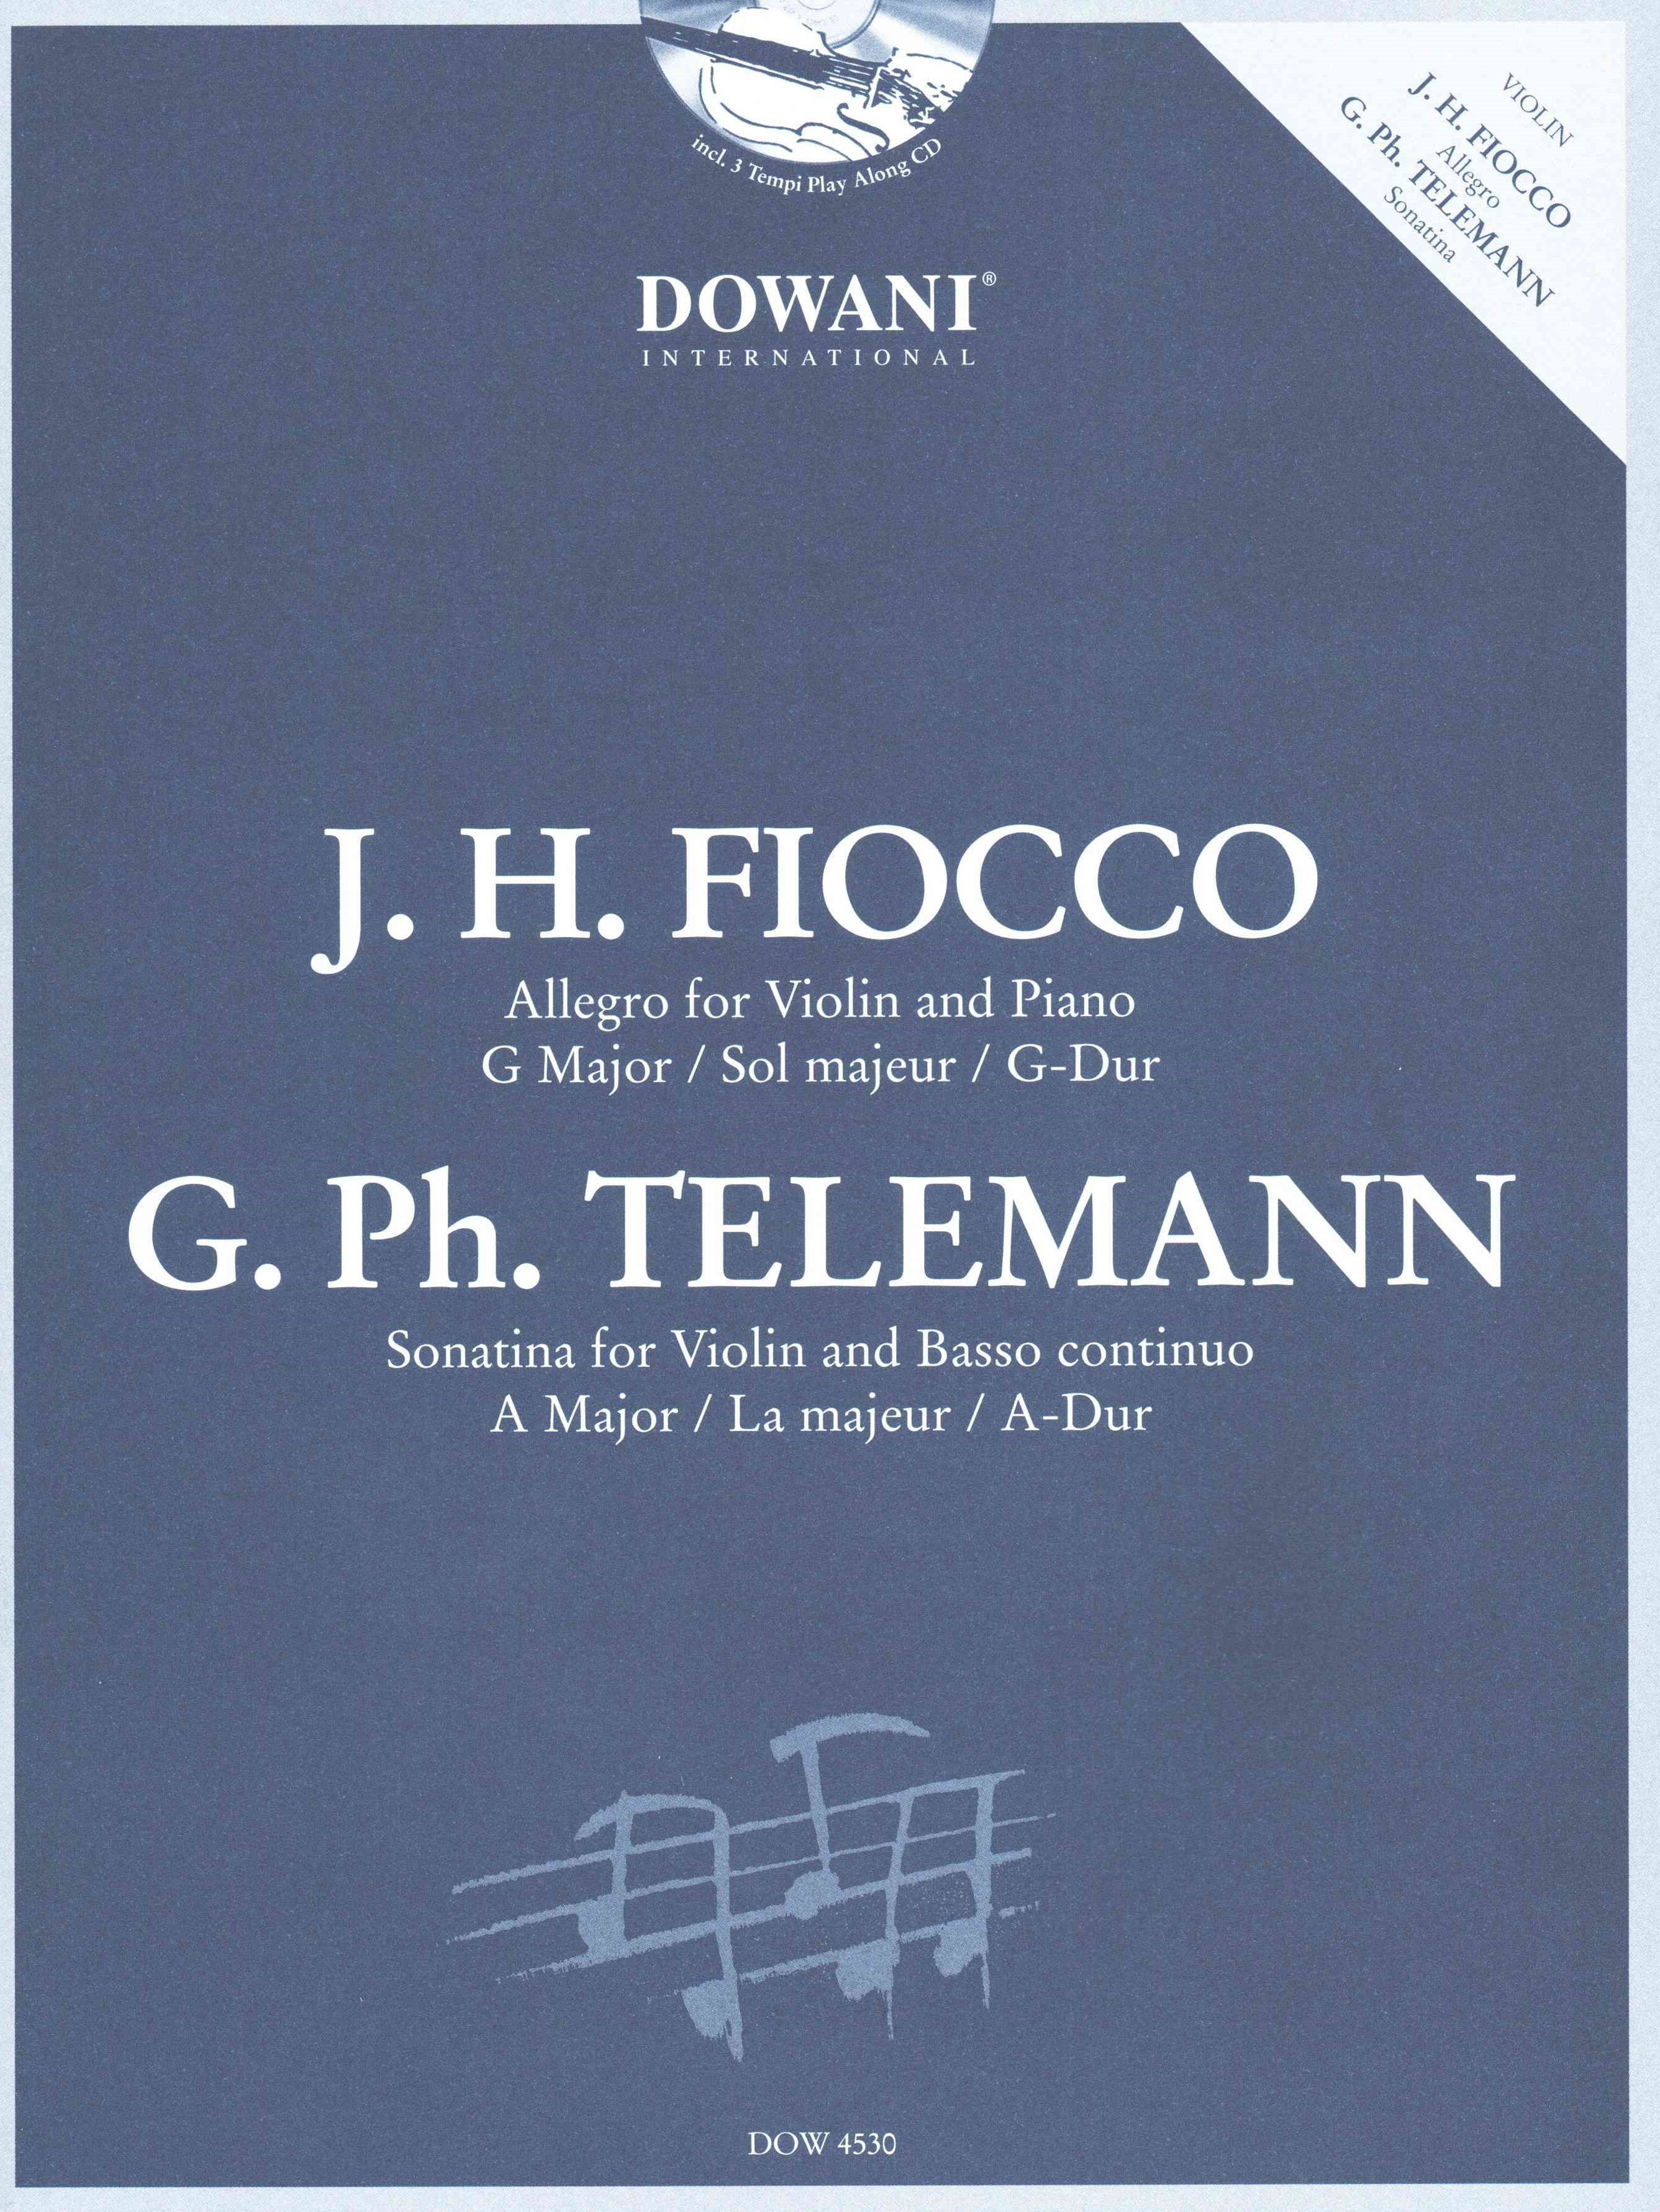 J. H. Fiocco - Allegro for Violin and Piano in G-Major, G. PH. Telemann - Sonatina in a Major